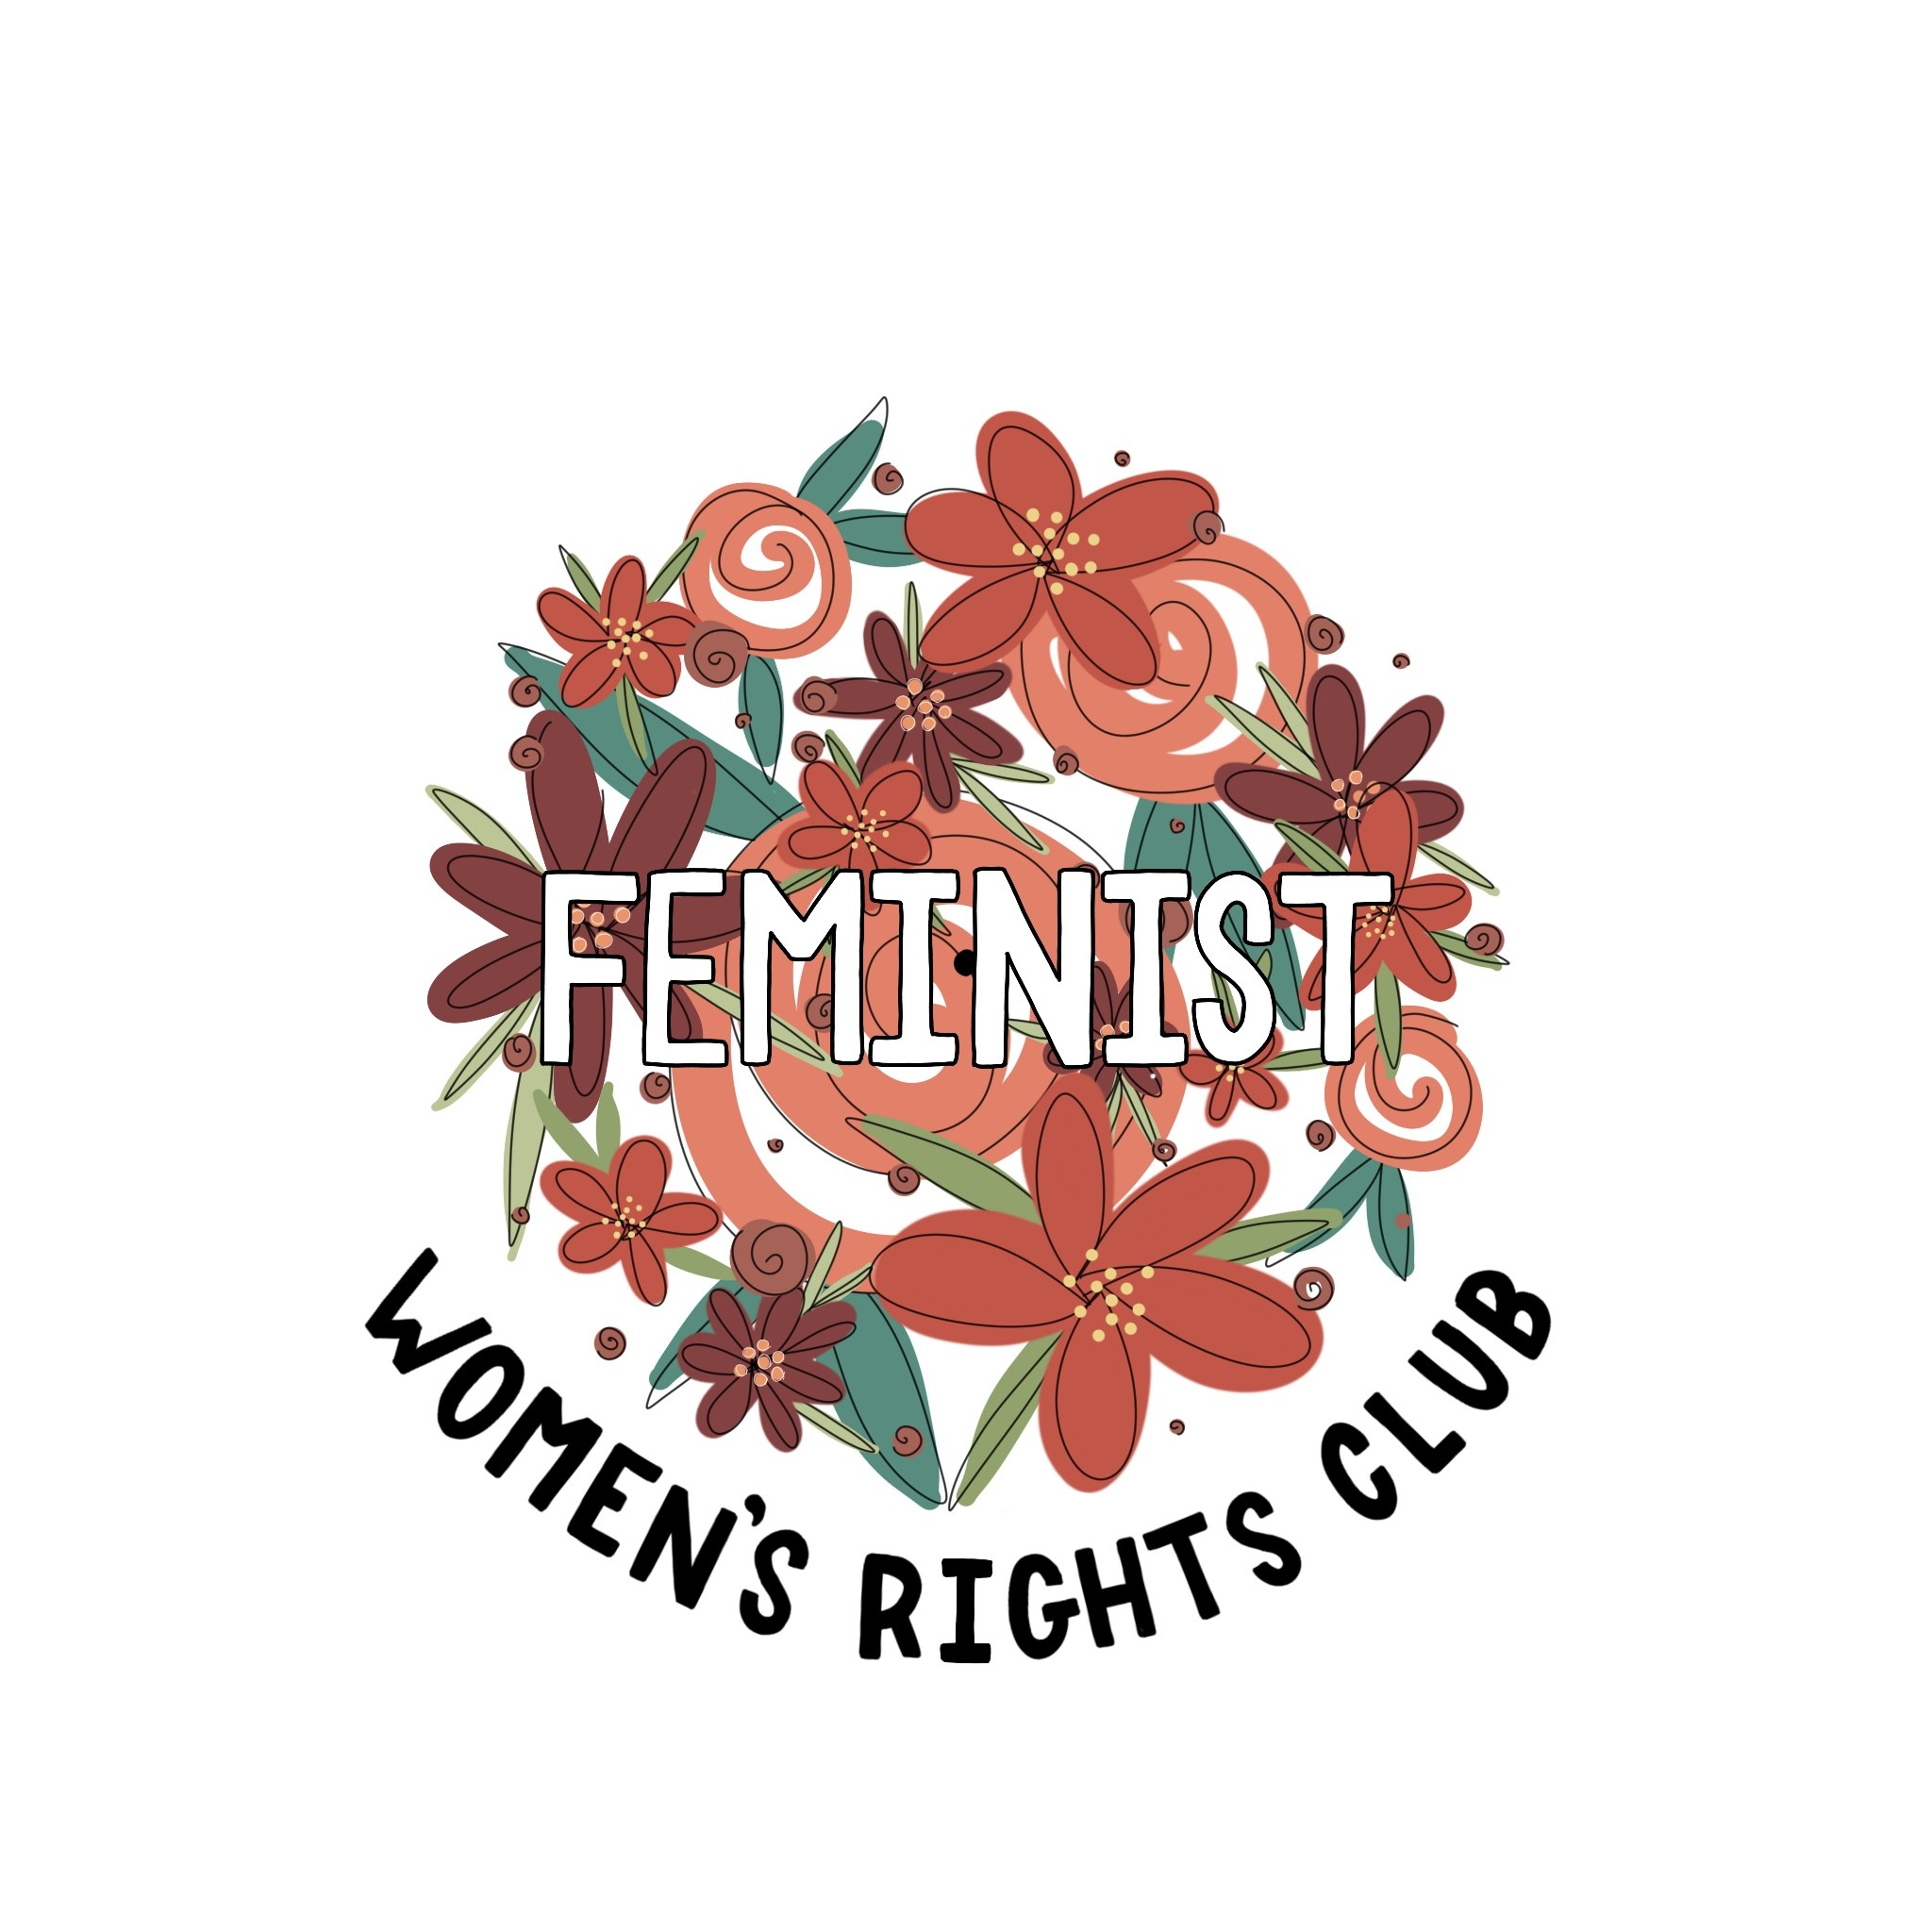 Women's Rights Club Sticker